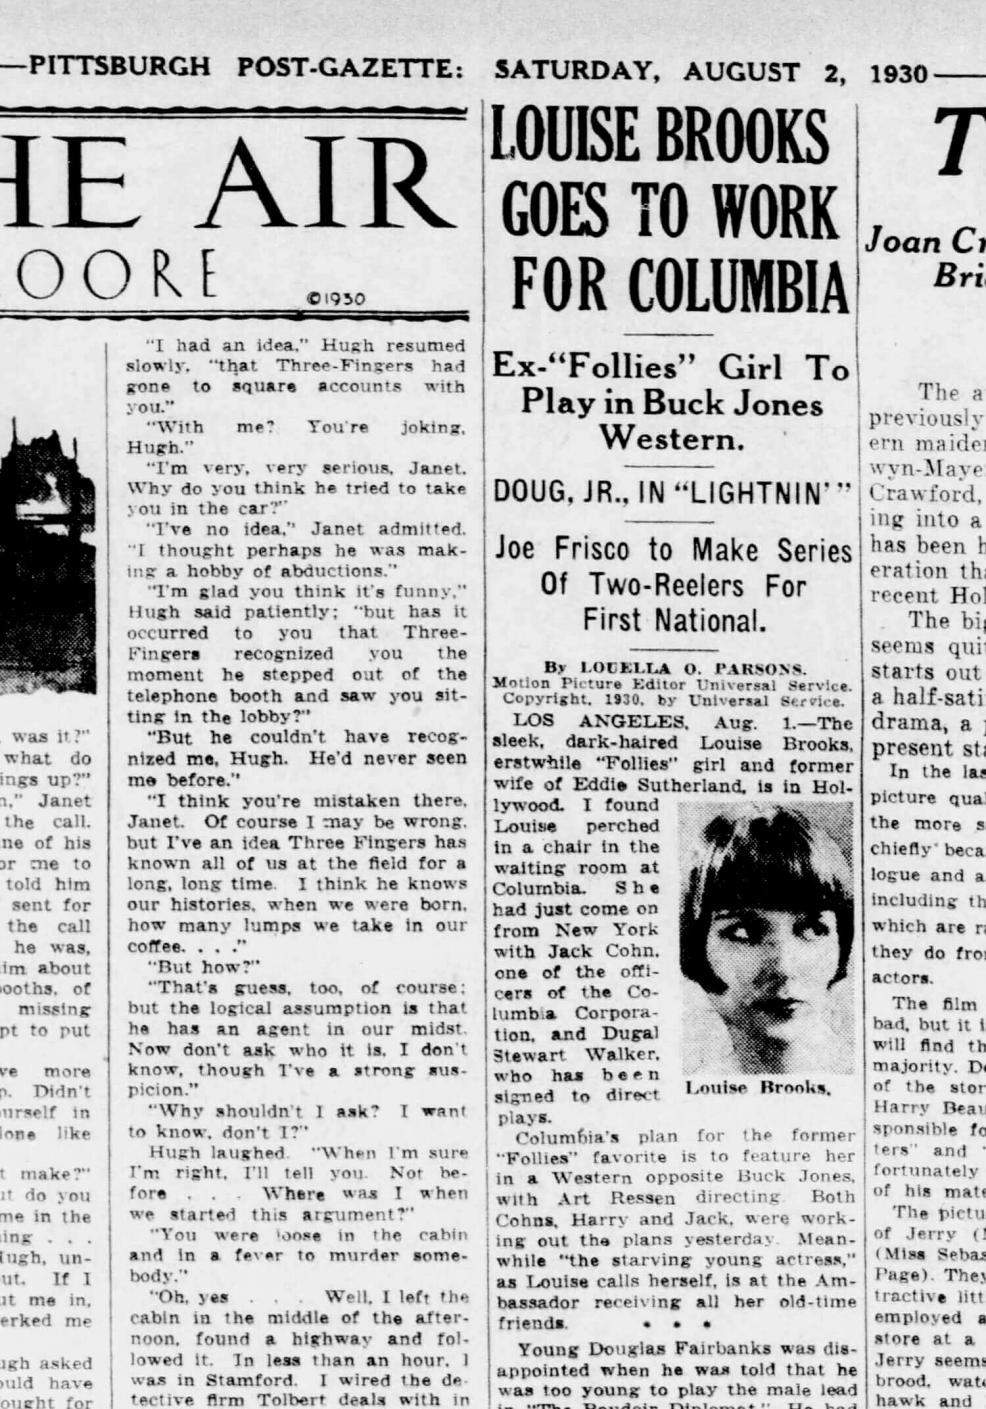 1930 Louise Brooks Goes To Work For Columbia - Louella Parsons Saturday, August 2